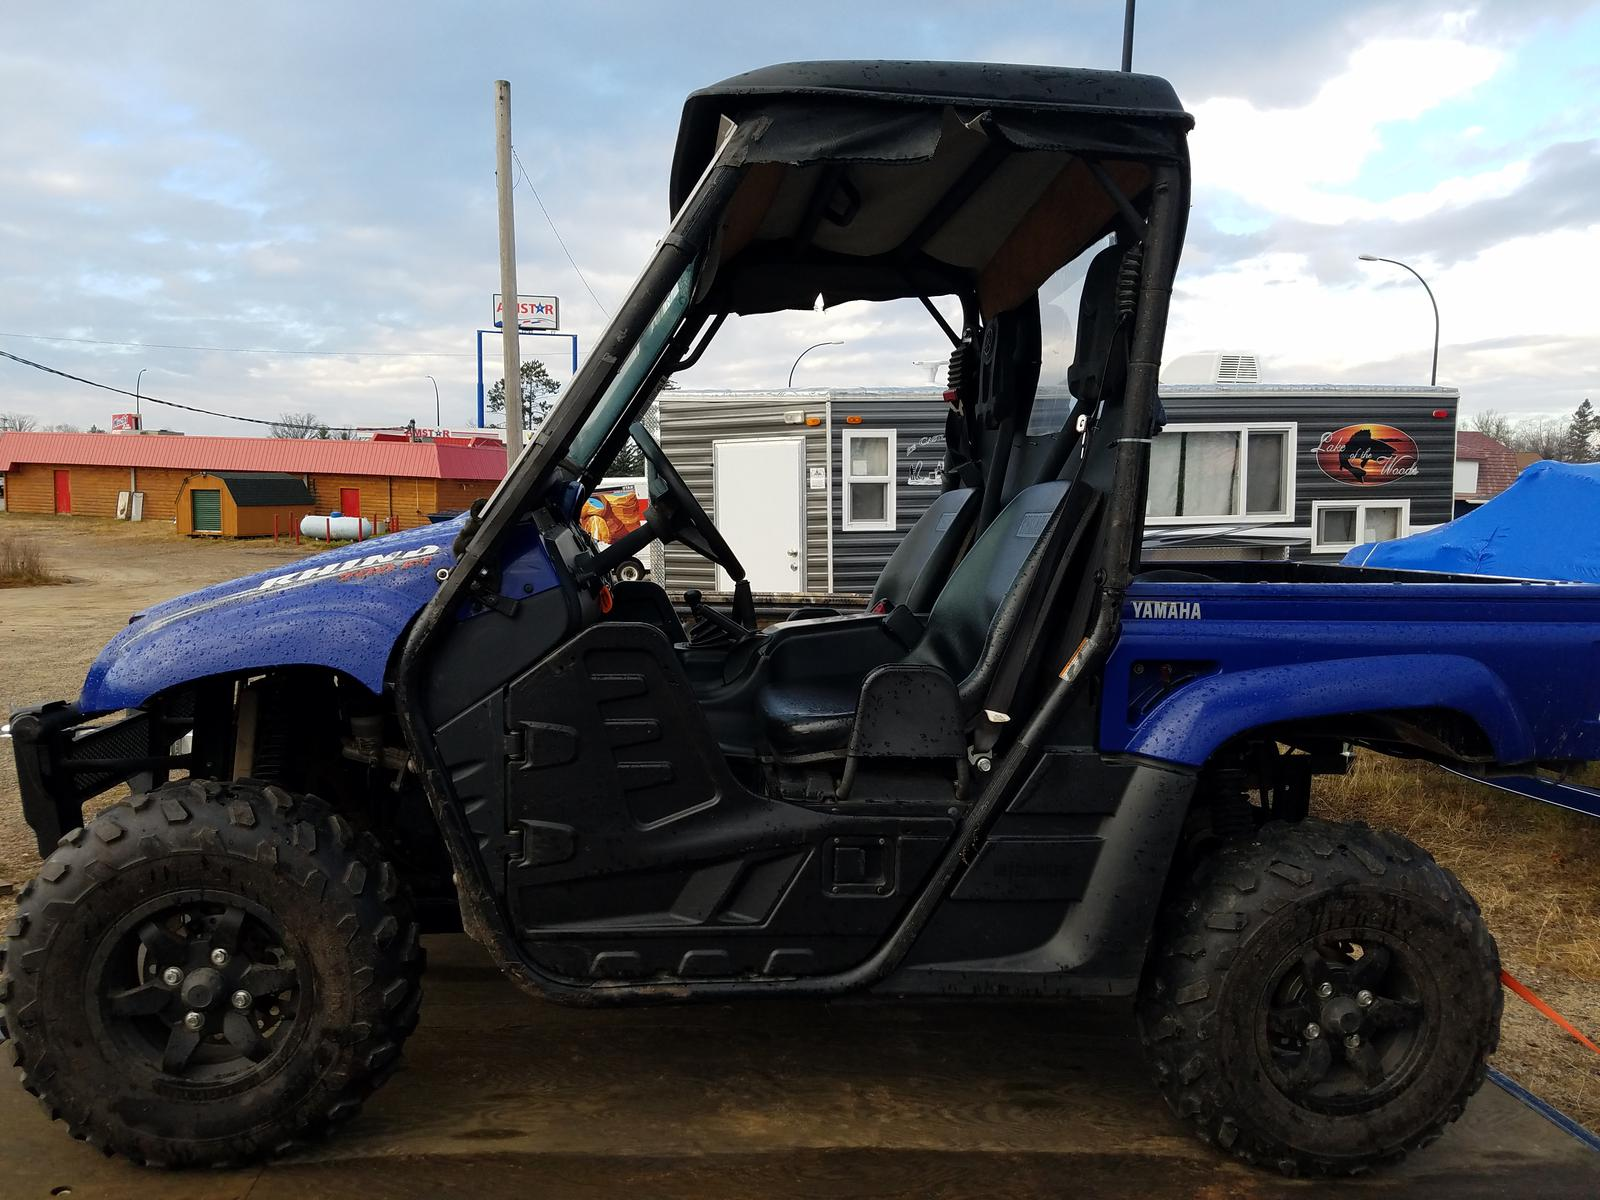 2012 Yamaha Rhino 700 Efi For Sale In Grand Rapids Mn Ray S Sport